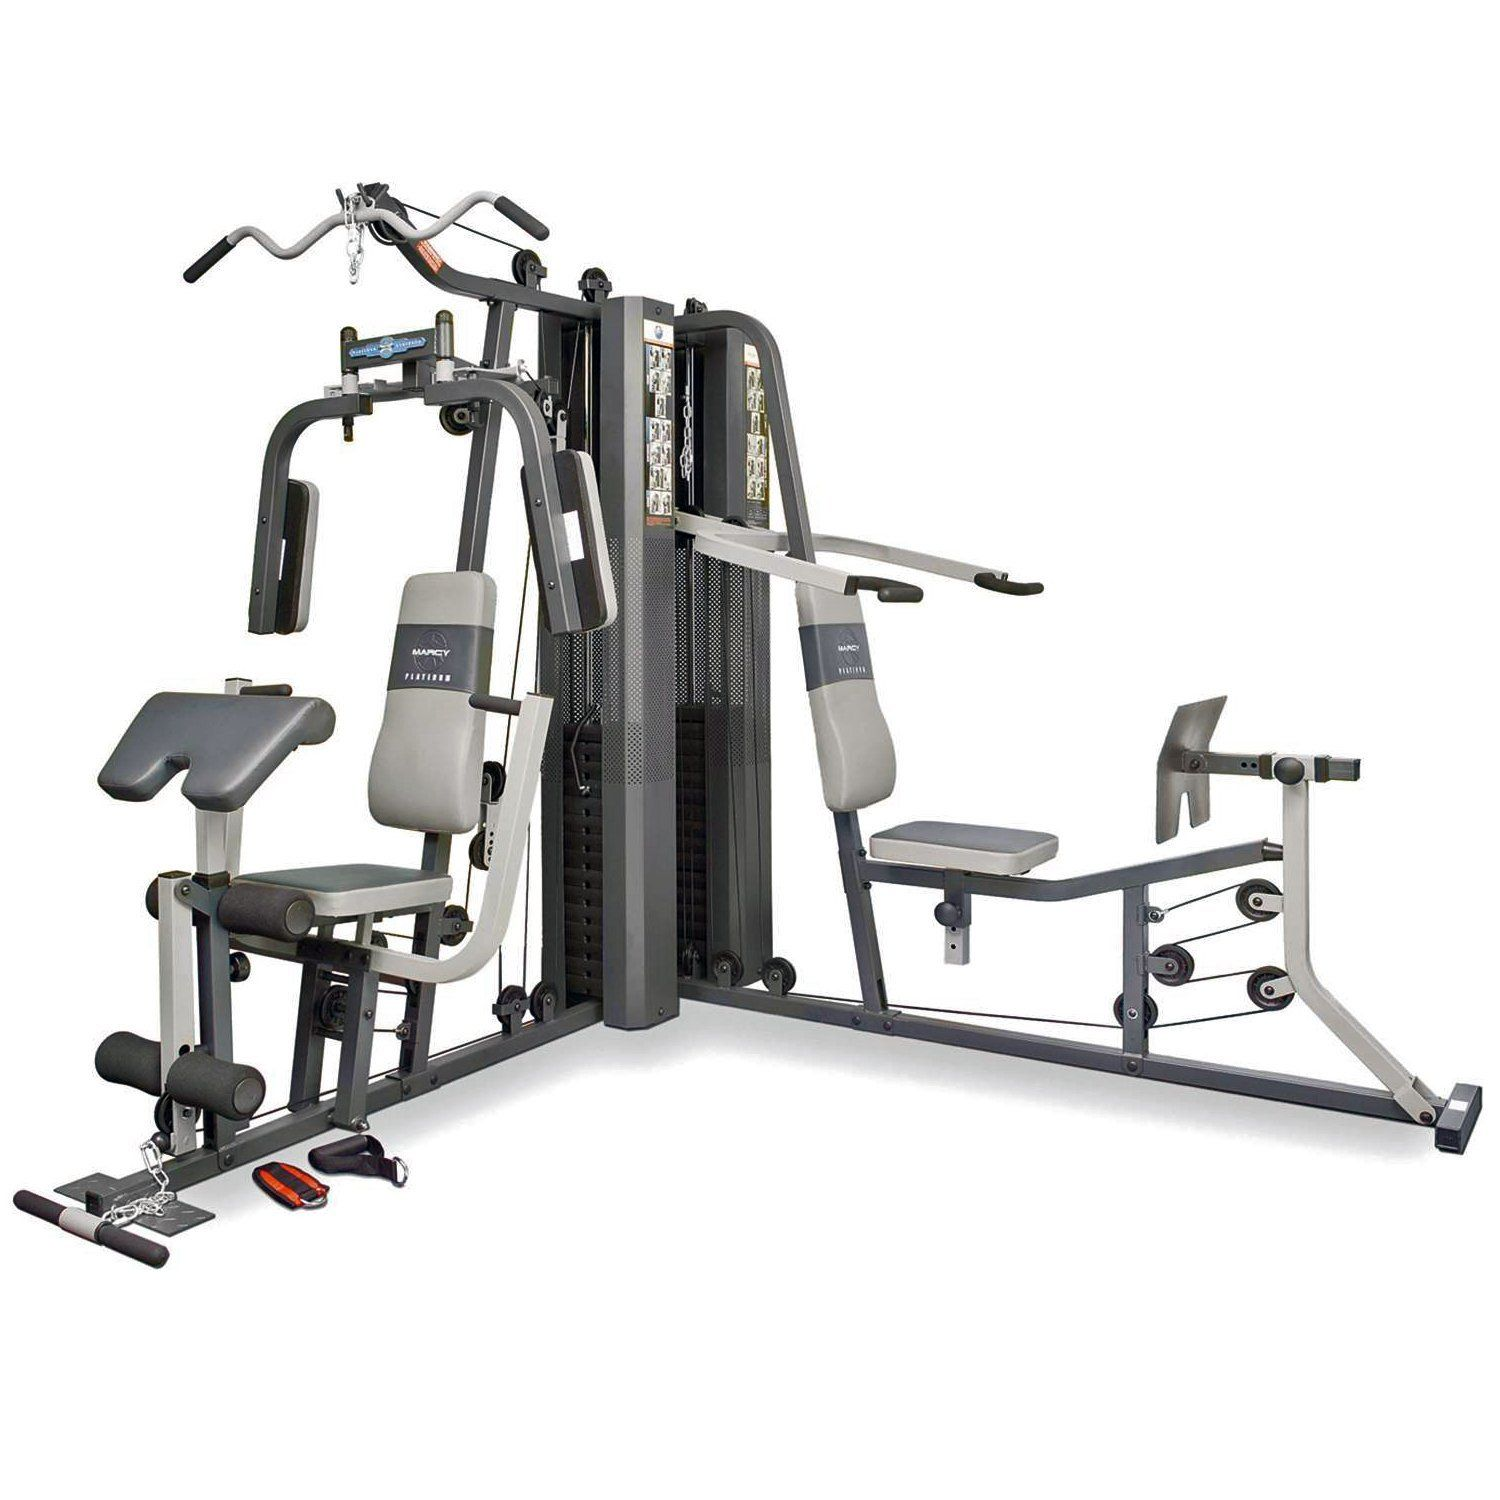 The ☛☛ marcy gs dual stack home gym review ☚☚ is